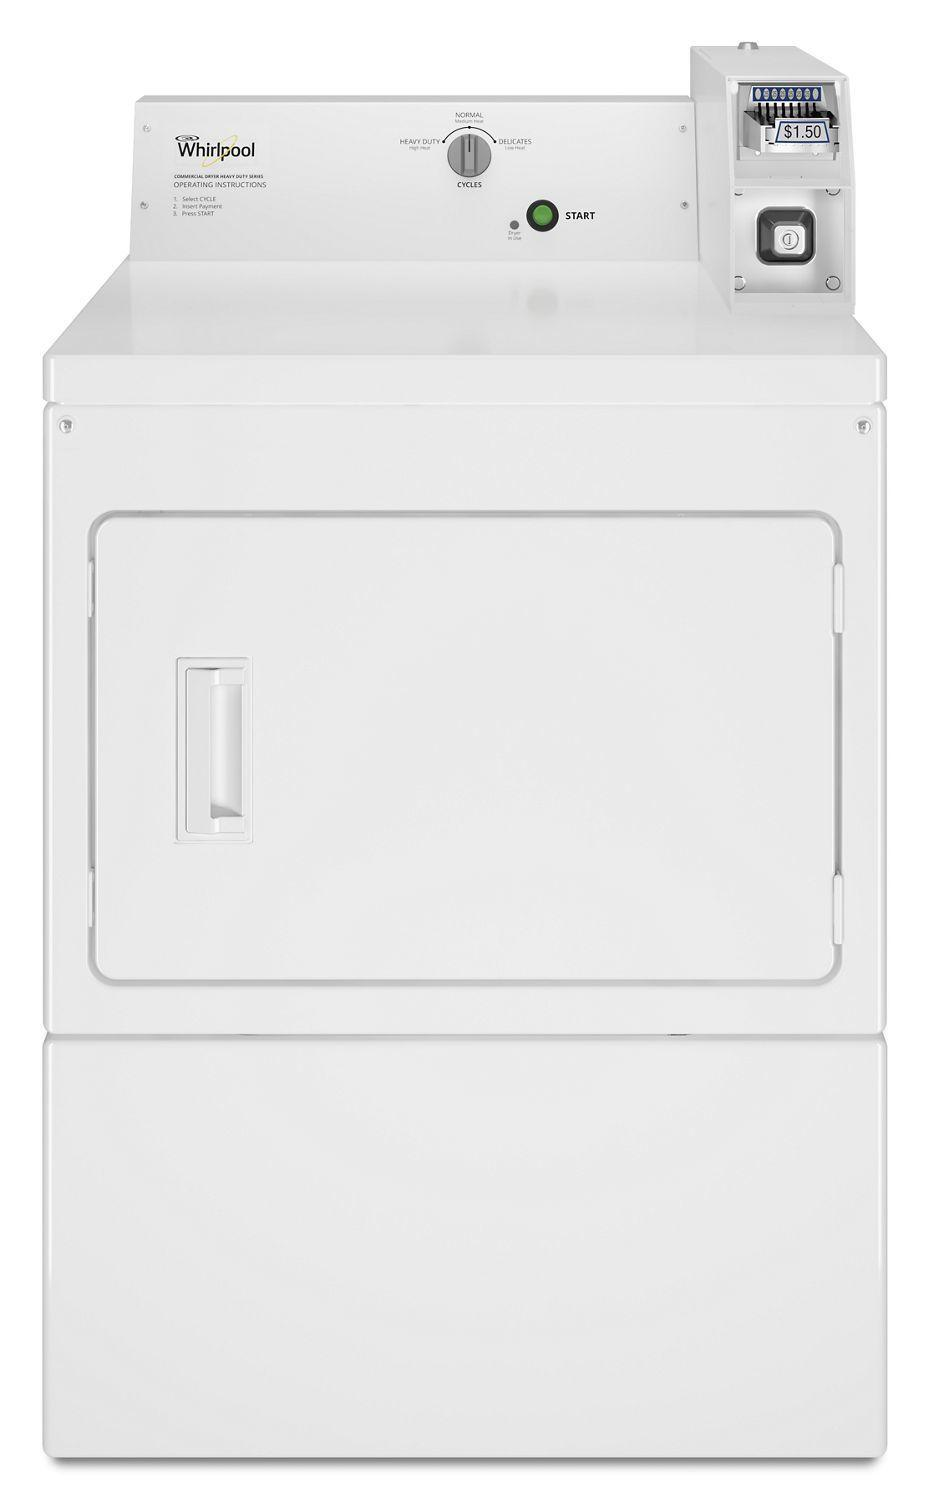 WhirlpoolCommercial Electric Super-Capacity Dryer, Coin-Slide And Coin-Box White